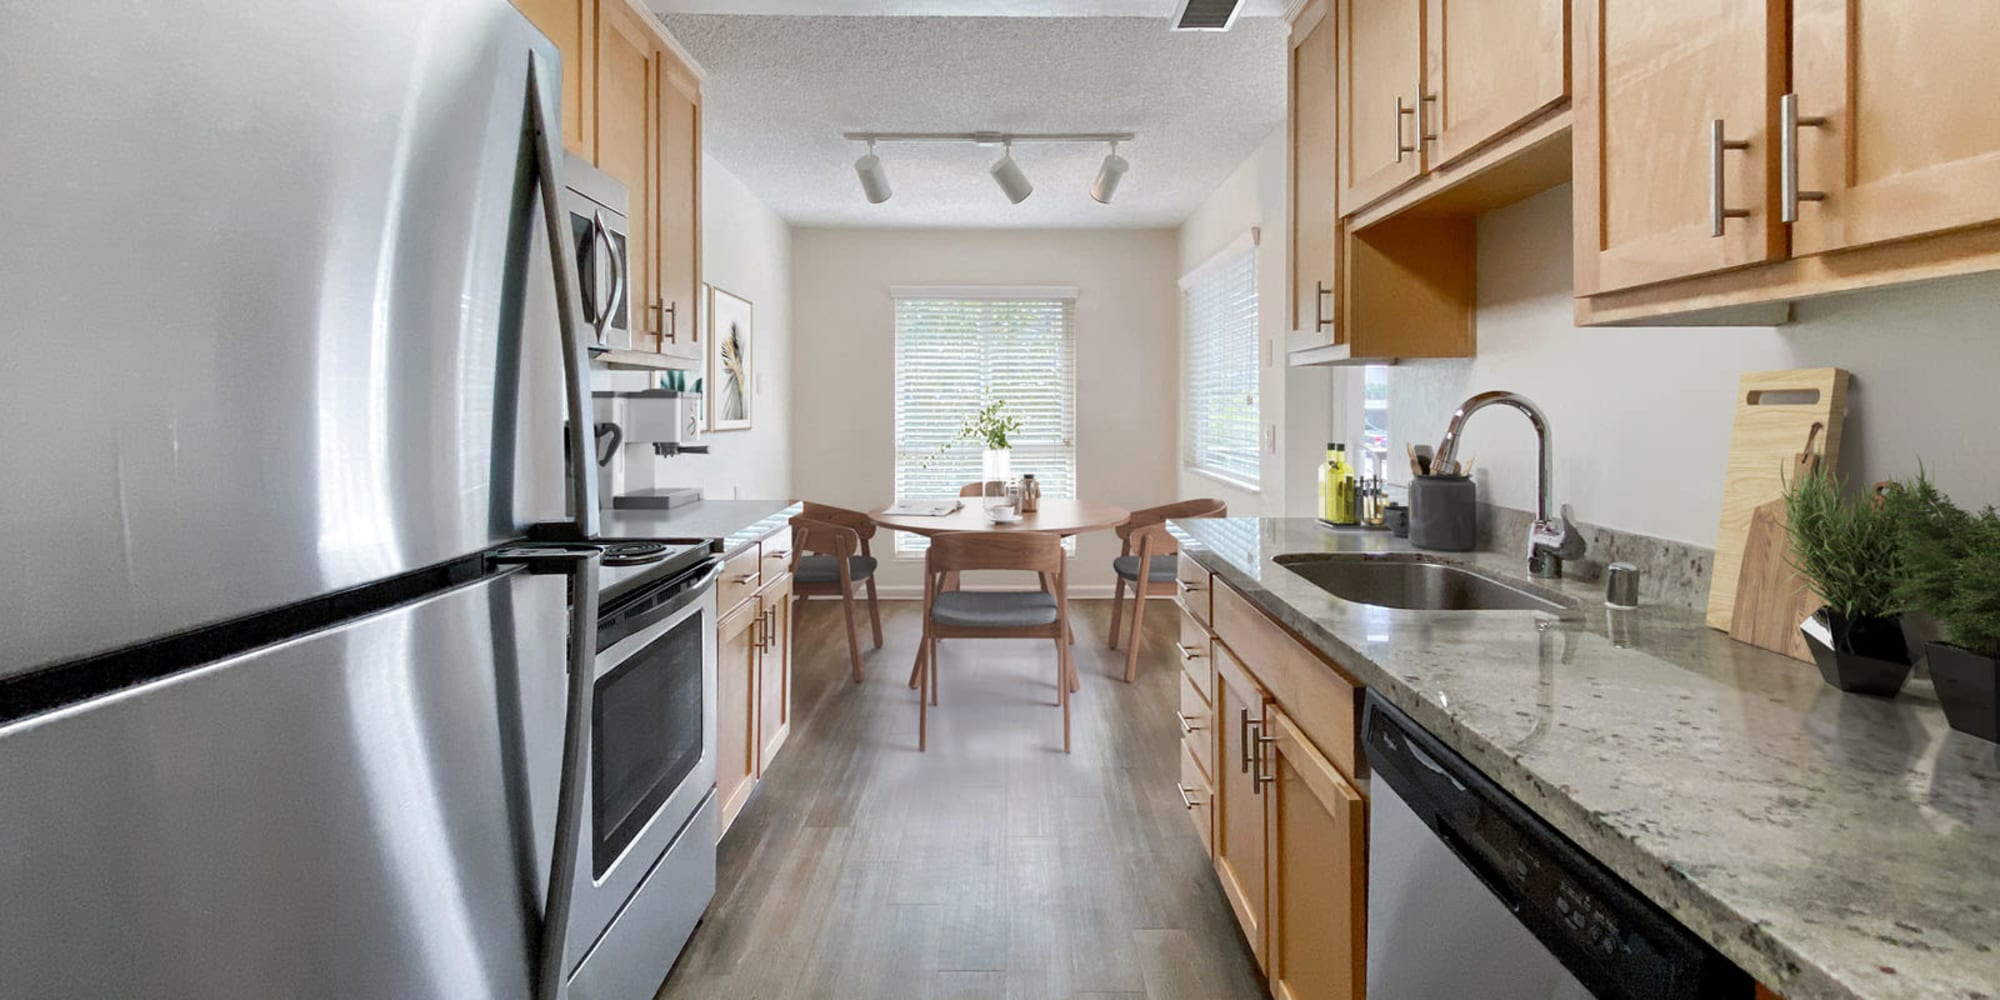 Granite countertops and stainless-steel appliances in a model home at Pleasanton Glen Apartment Homes in Pleasanton, California